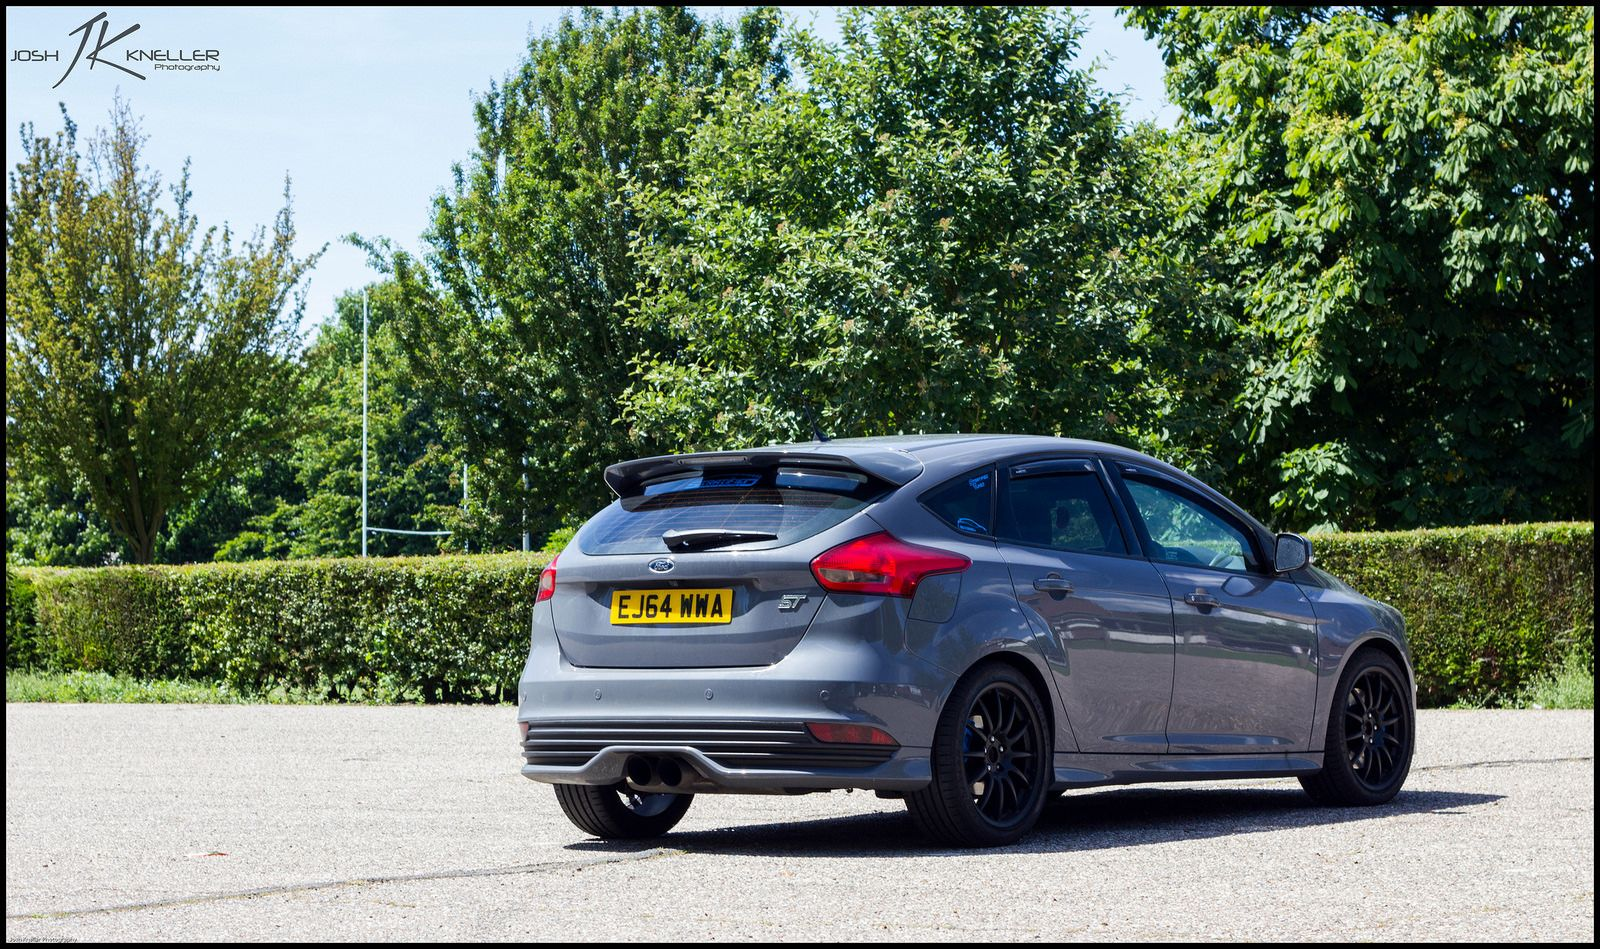 New look for my 2015 Stealth ST | Ford Focus ST Forum | ford stuff |  Pinterest | Ford focus and Ford